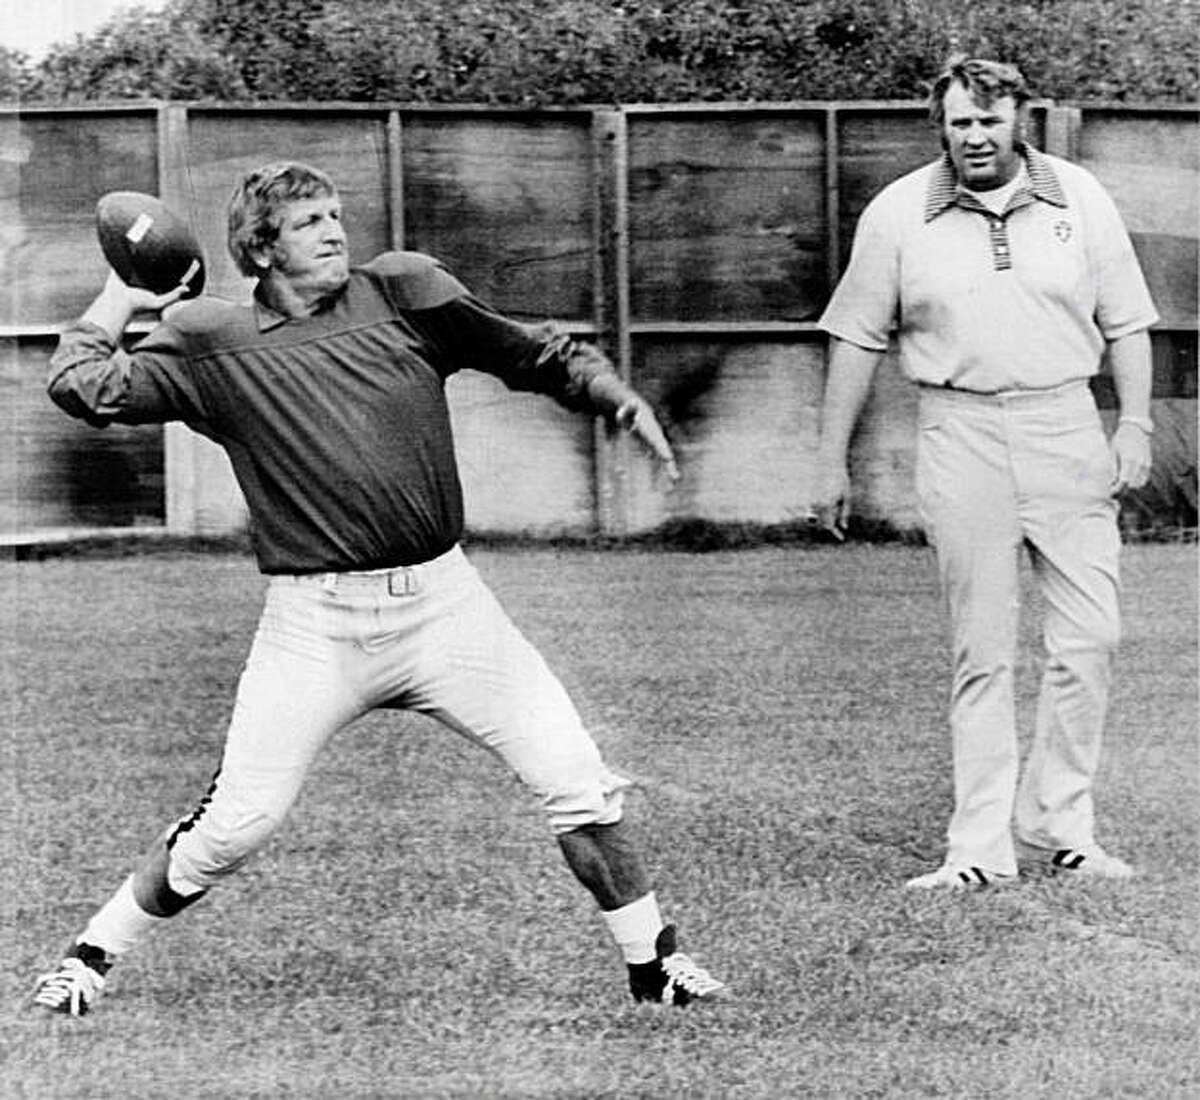 Going strong at age 48. Veteran quarterback and kicker George Blanda of the Oakland Raiders gets set to toss the ball during practice on Wednesday in Oakland, under the watchful eye of head coach John Madden. Wednesday was Blanda's 48th birthday. He's entGoing strong at age 48. Veteran quarterback and kicker George Blanda of the Oakland Raiders gets set to toss the ball during practice on Wednesday in Oakland, under the watchful eye of head coach John Madden. Wednesday was Blanda's 48th birthday. He's entering his 26th pro season and is just 81 points shy of becoming the first 2,000 point scorer in pro football history. Photo was taken September 18, 1975.